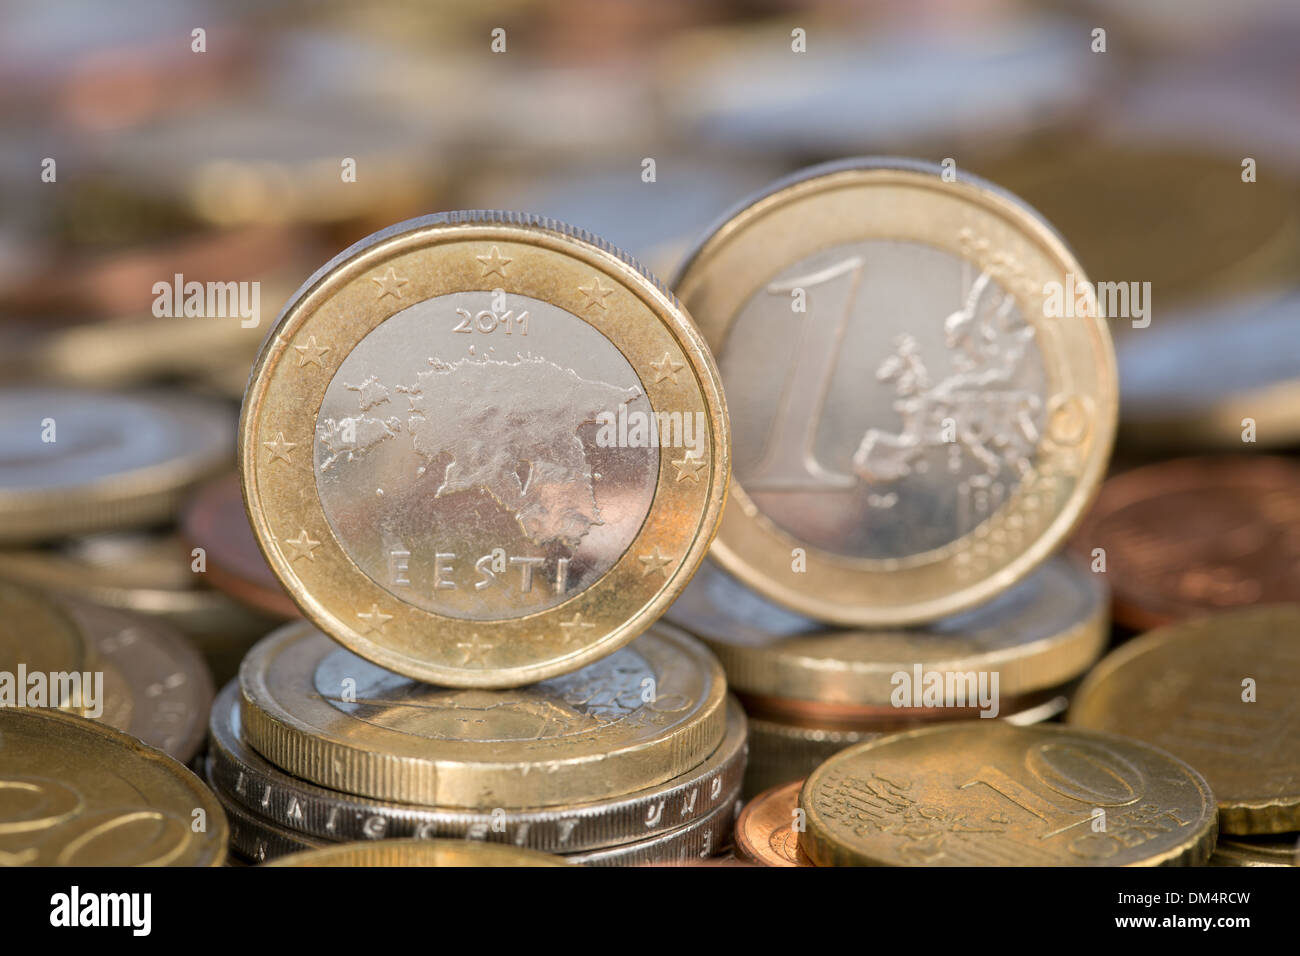 A one Euro coin from the EU member country Estonia - Stock Image